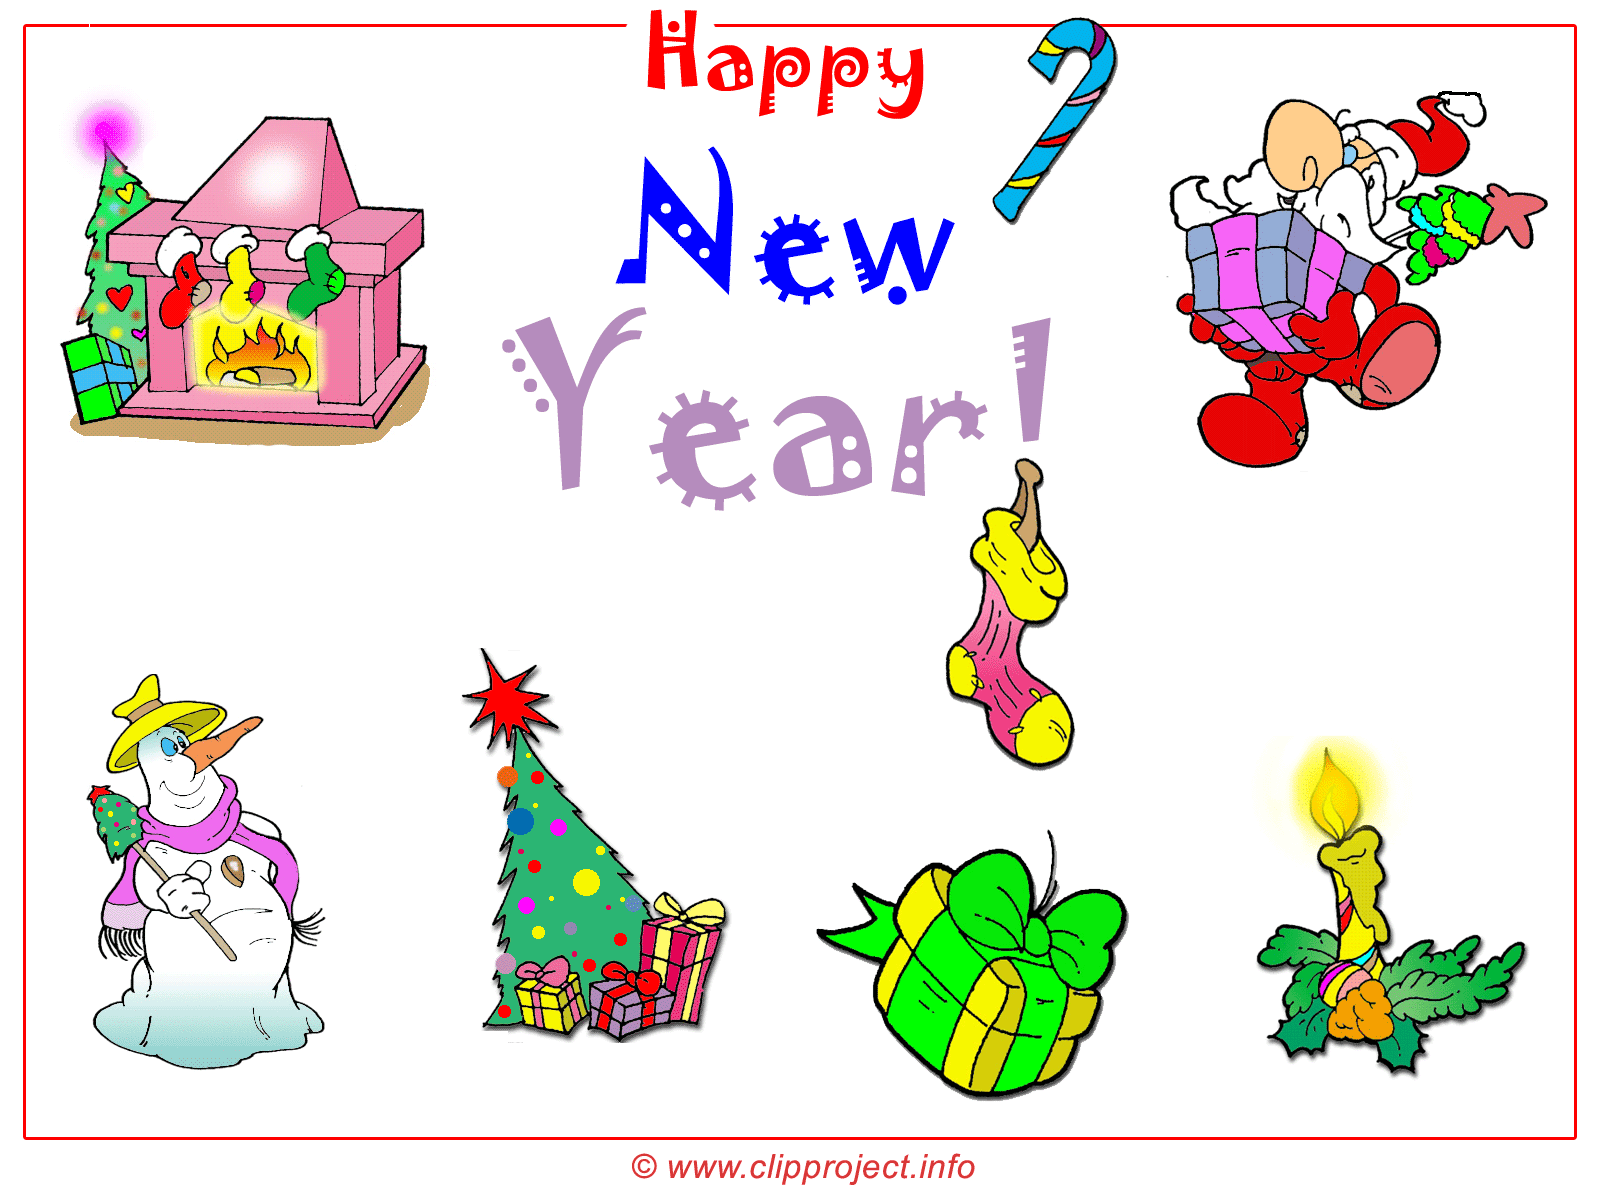 merry christmas and happy new year free clipart wallpaper 1600x1200 px